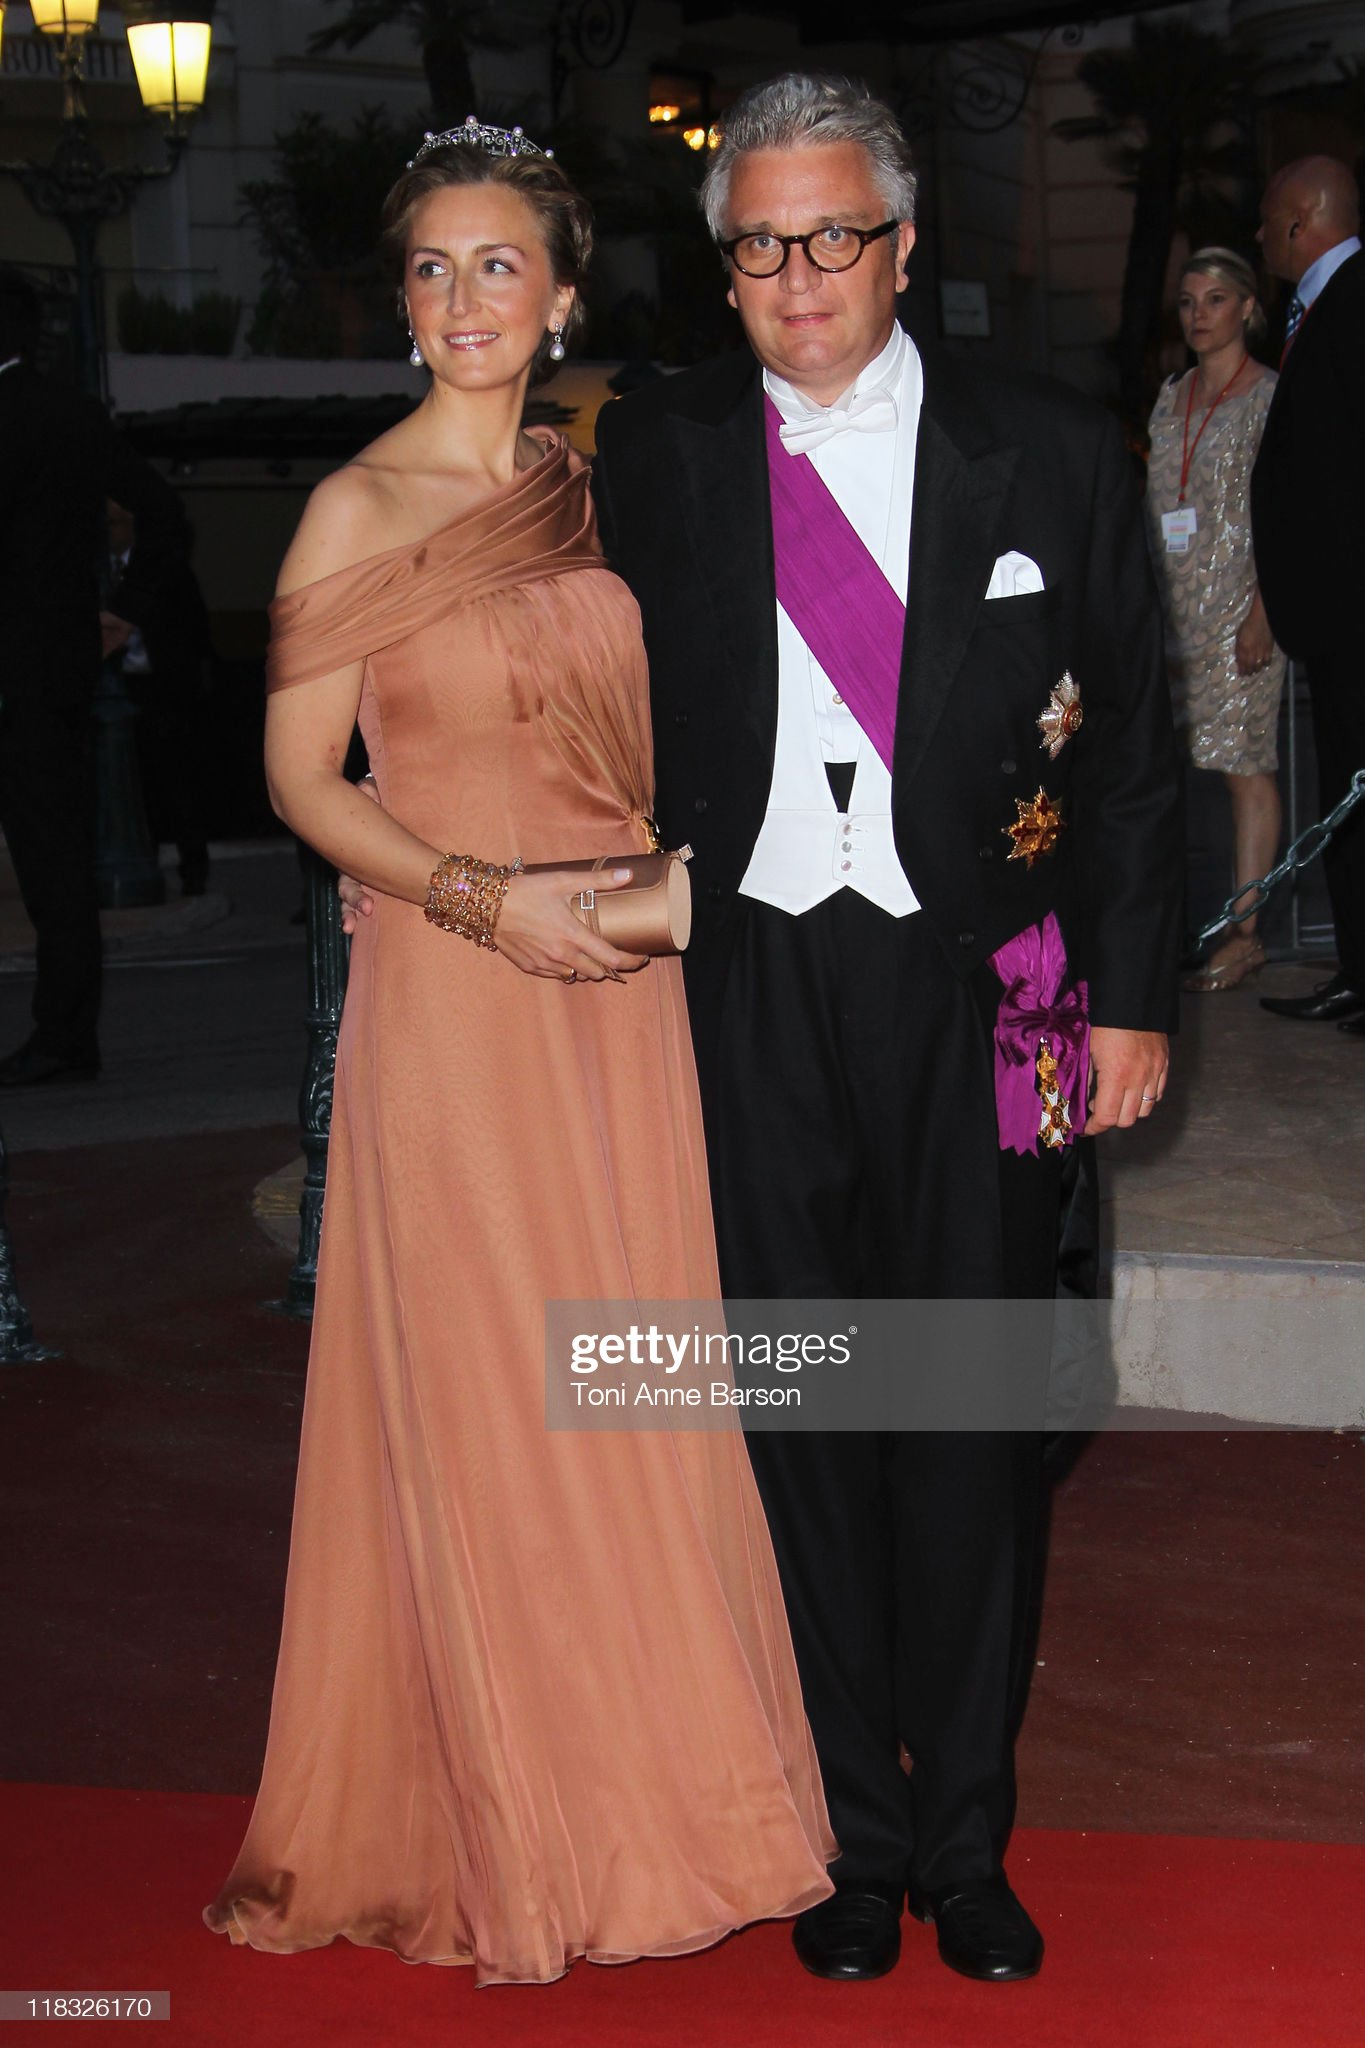 Monaco Royal Wedding - Dinner and Fireworks : News Photo